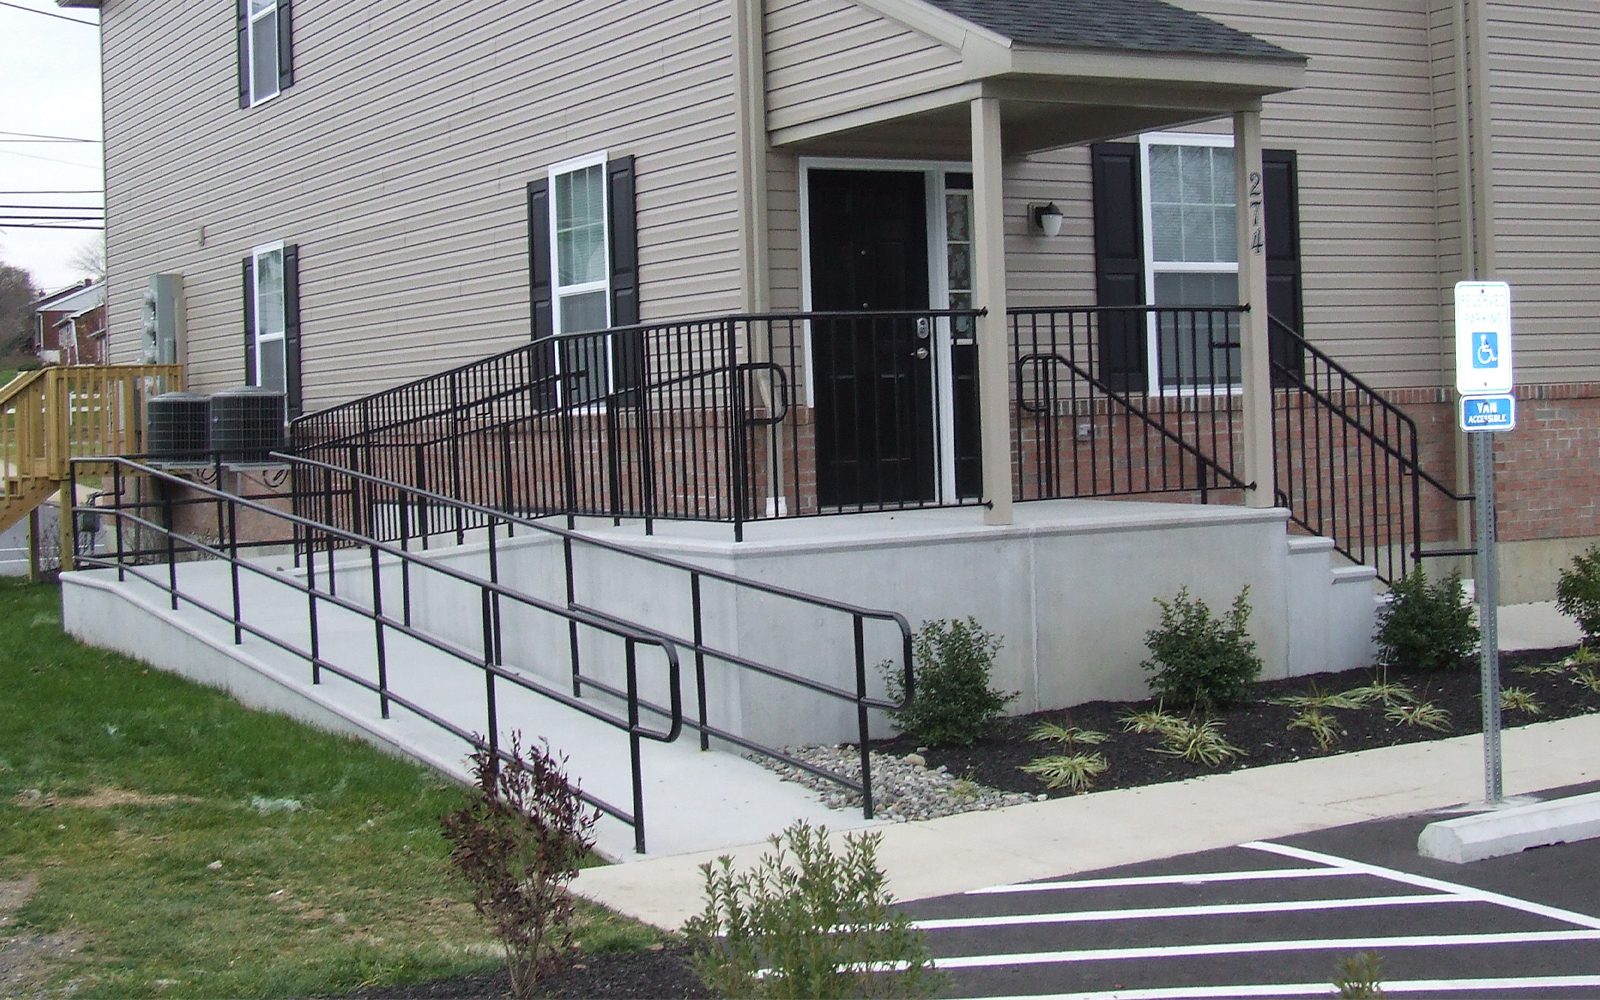 precast-concrete-ramp-steps-and-railing